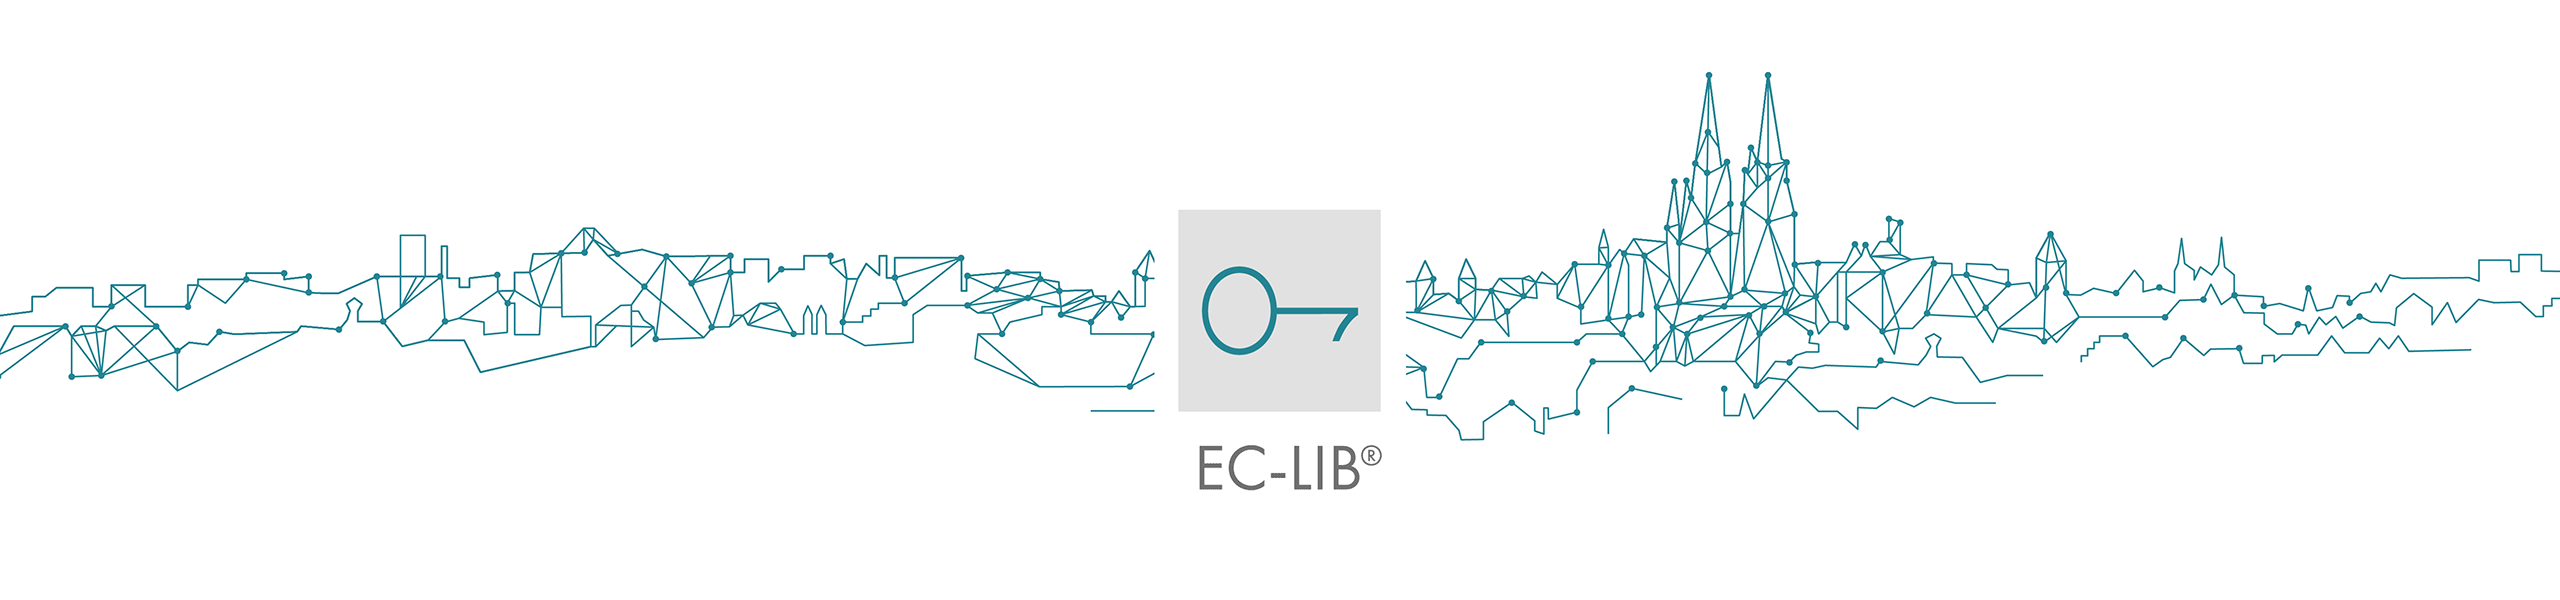 EC-LIB Function Library Logo with Key and Regensburg Graphic